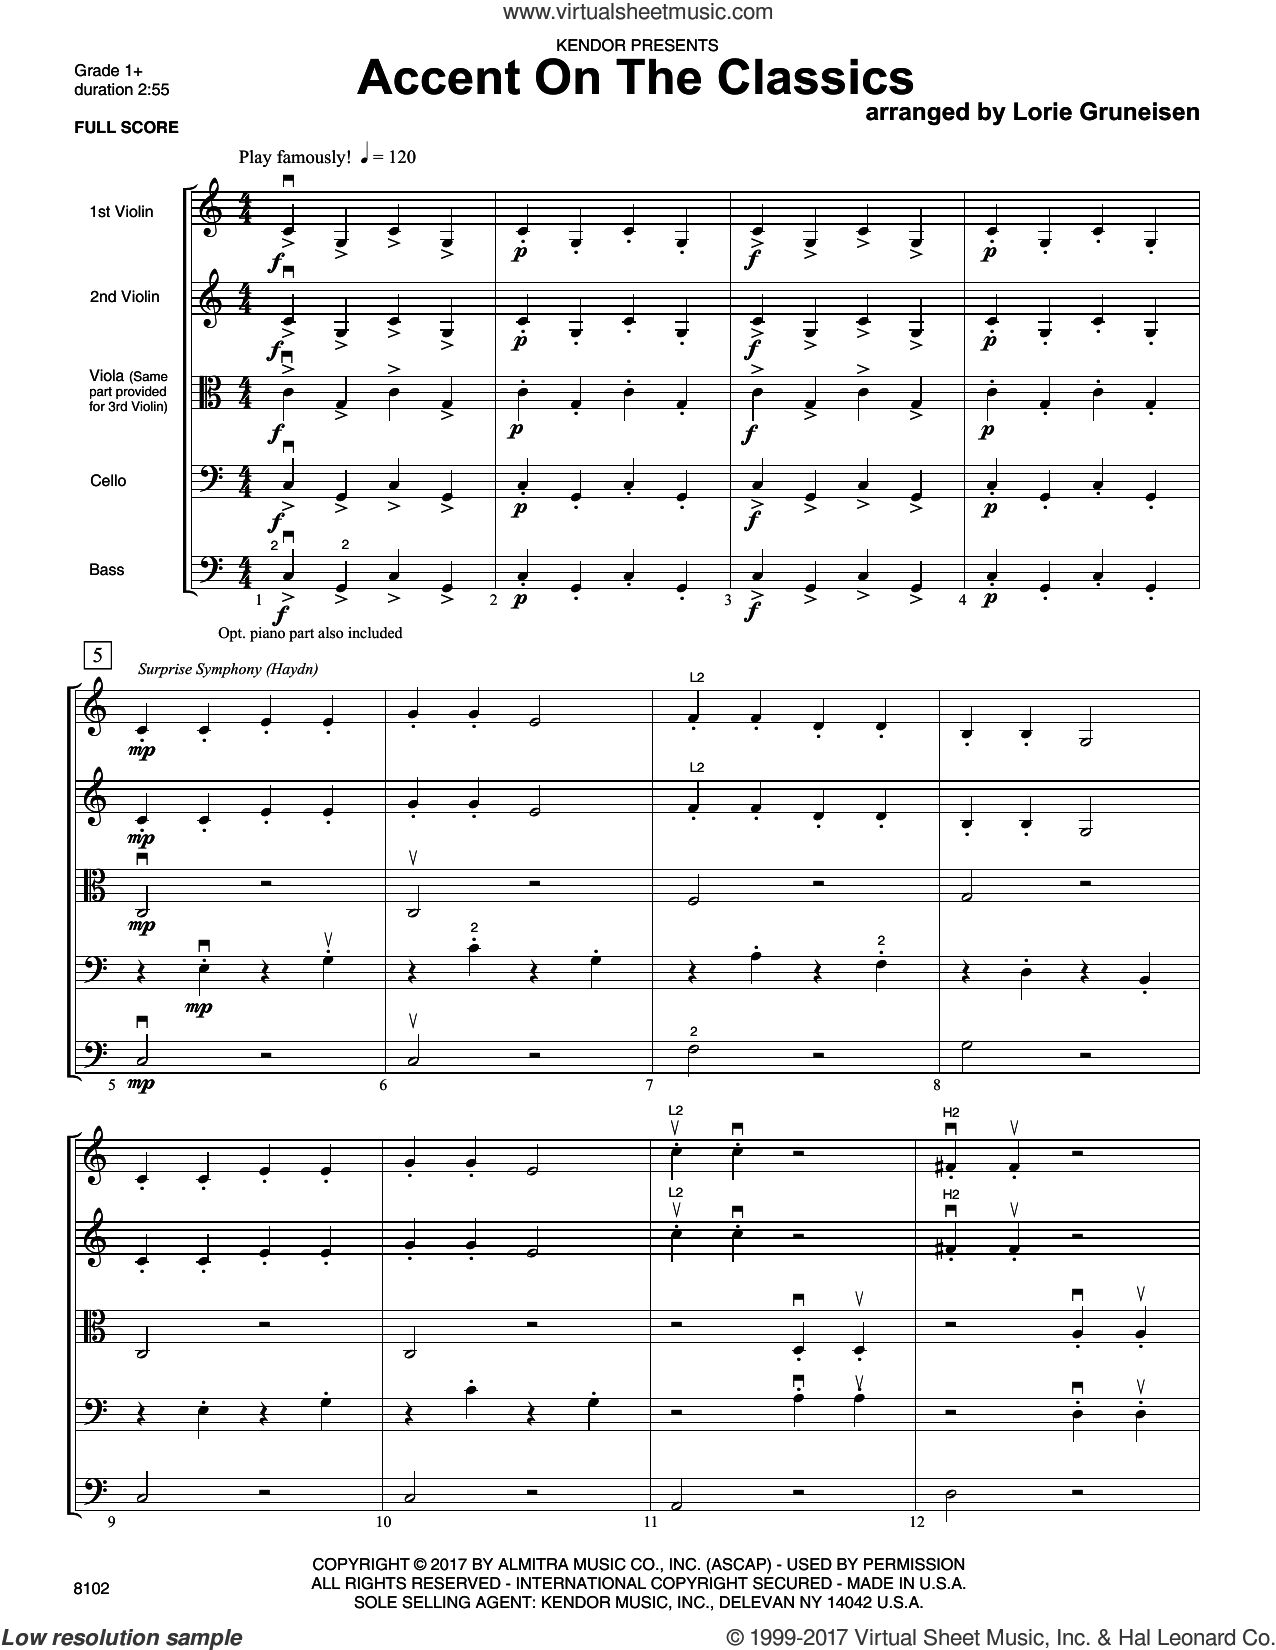 Accent On The Classics (COMPLETE) sheet music for orchestra by Lorie Gruneisen, classical score, intermediate skill level